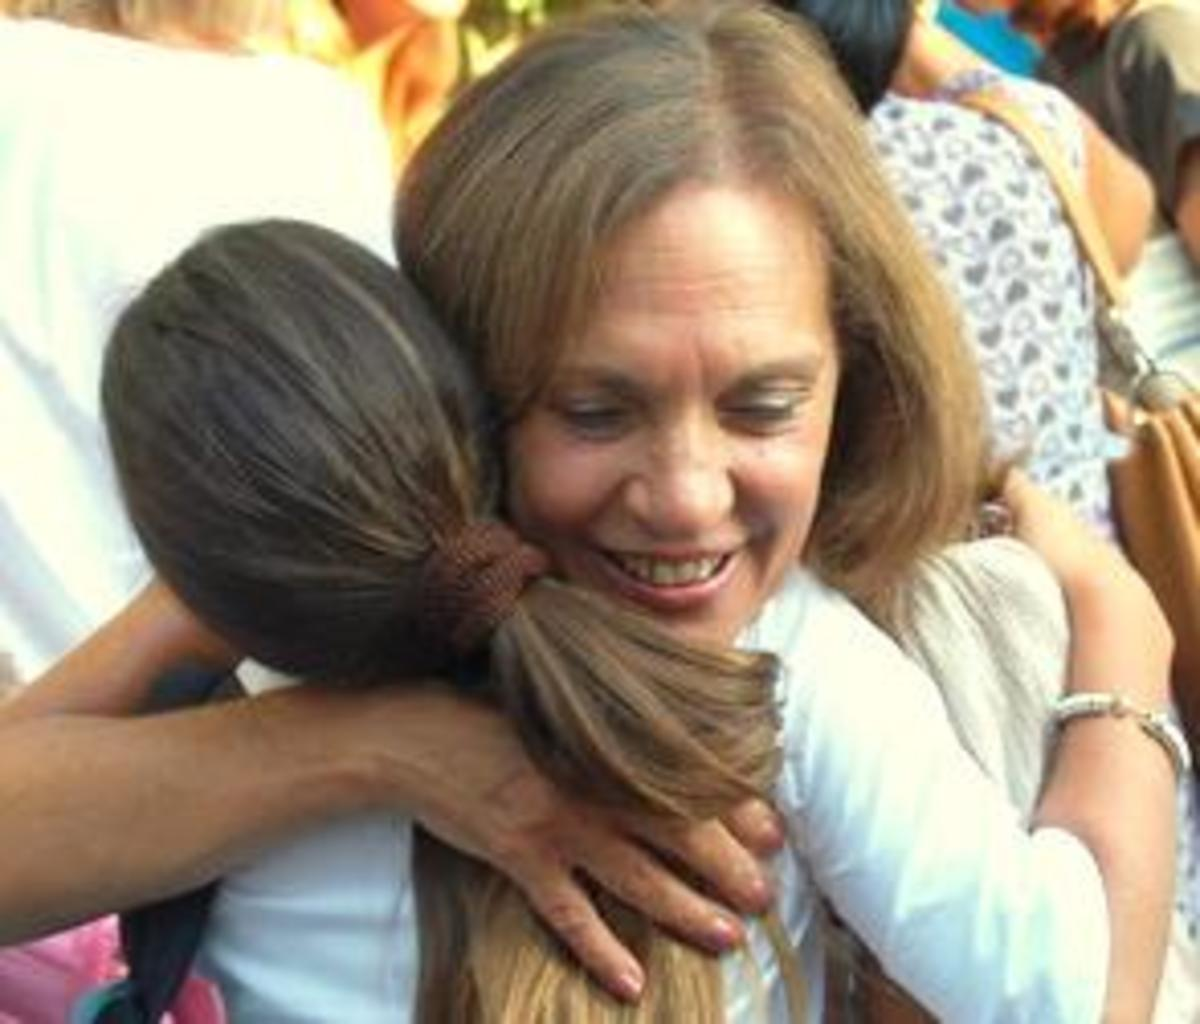 teachers-hugging-and-touching-students-is-it-wrong